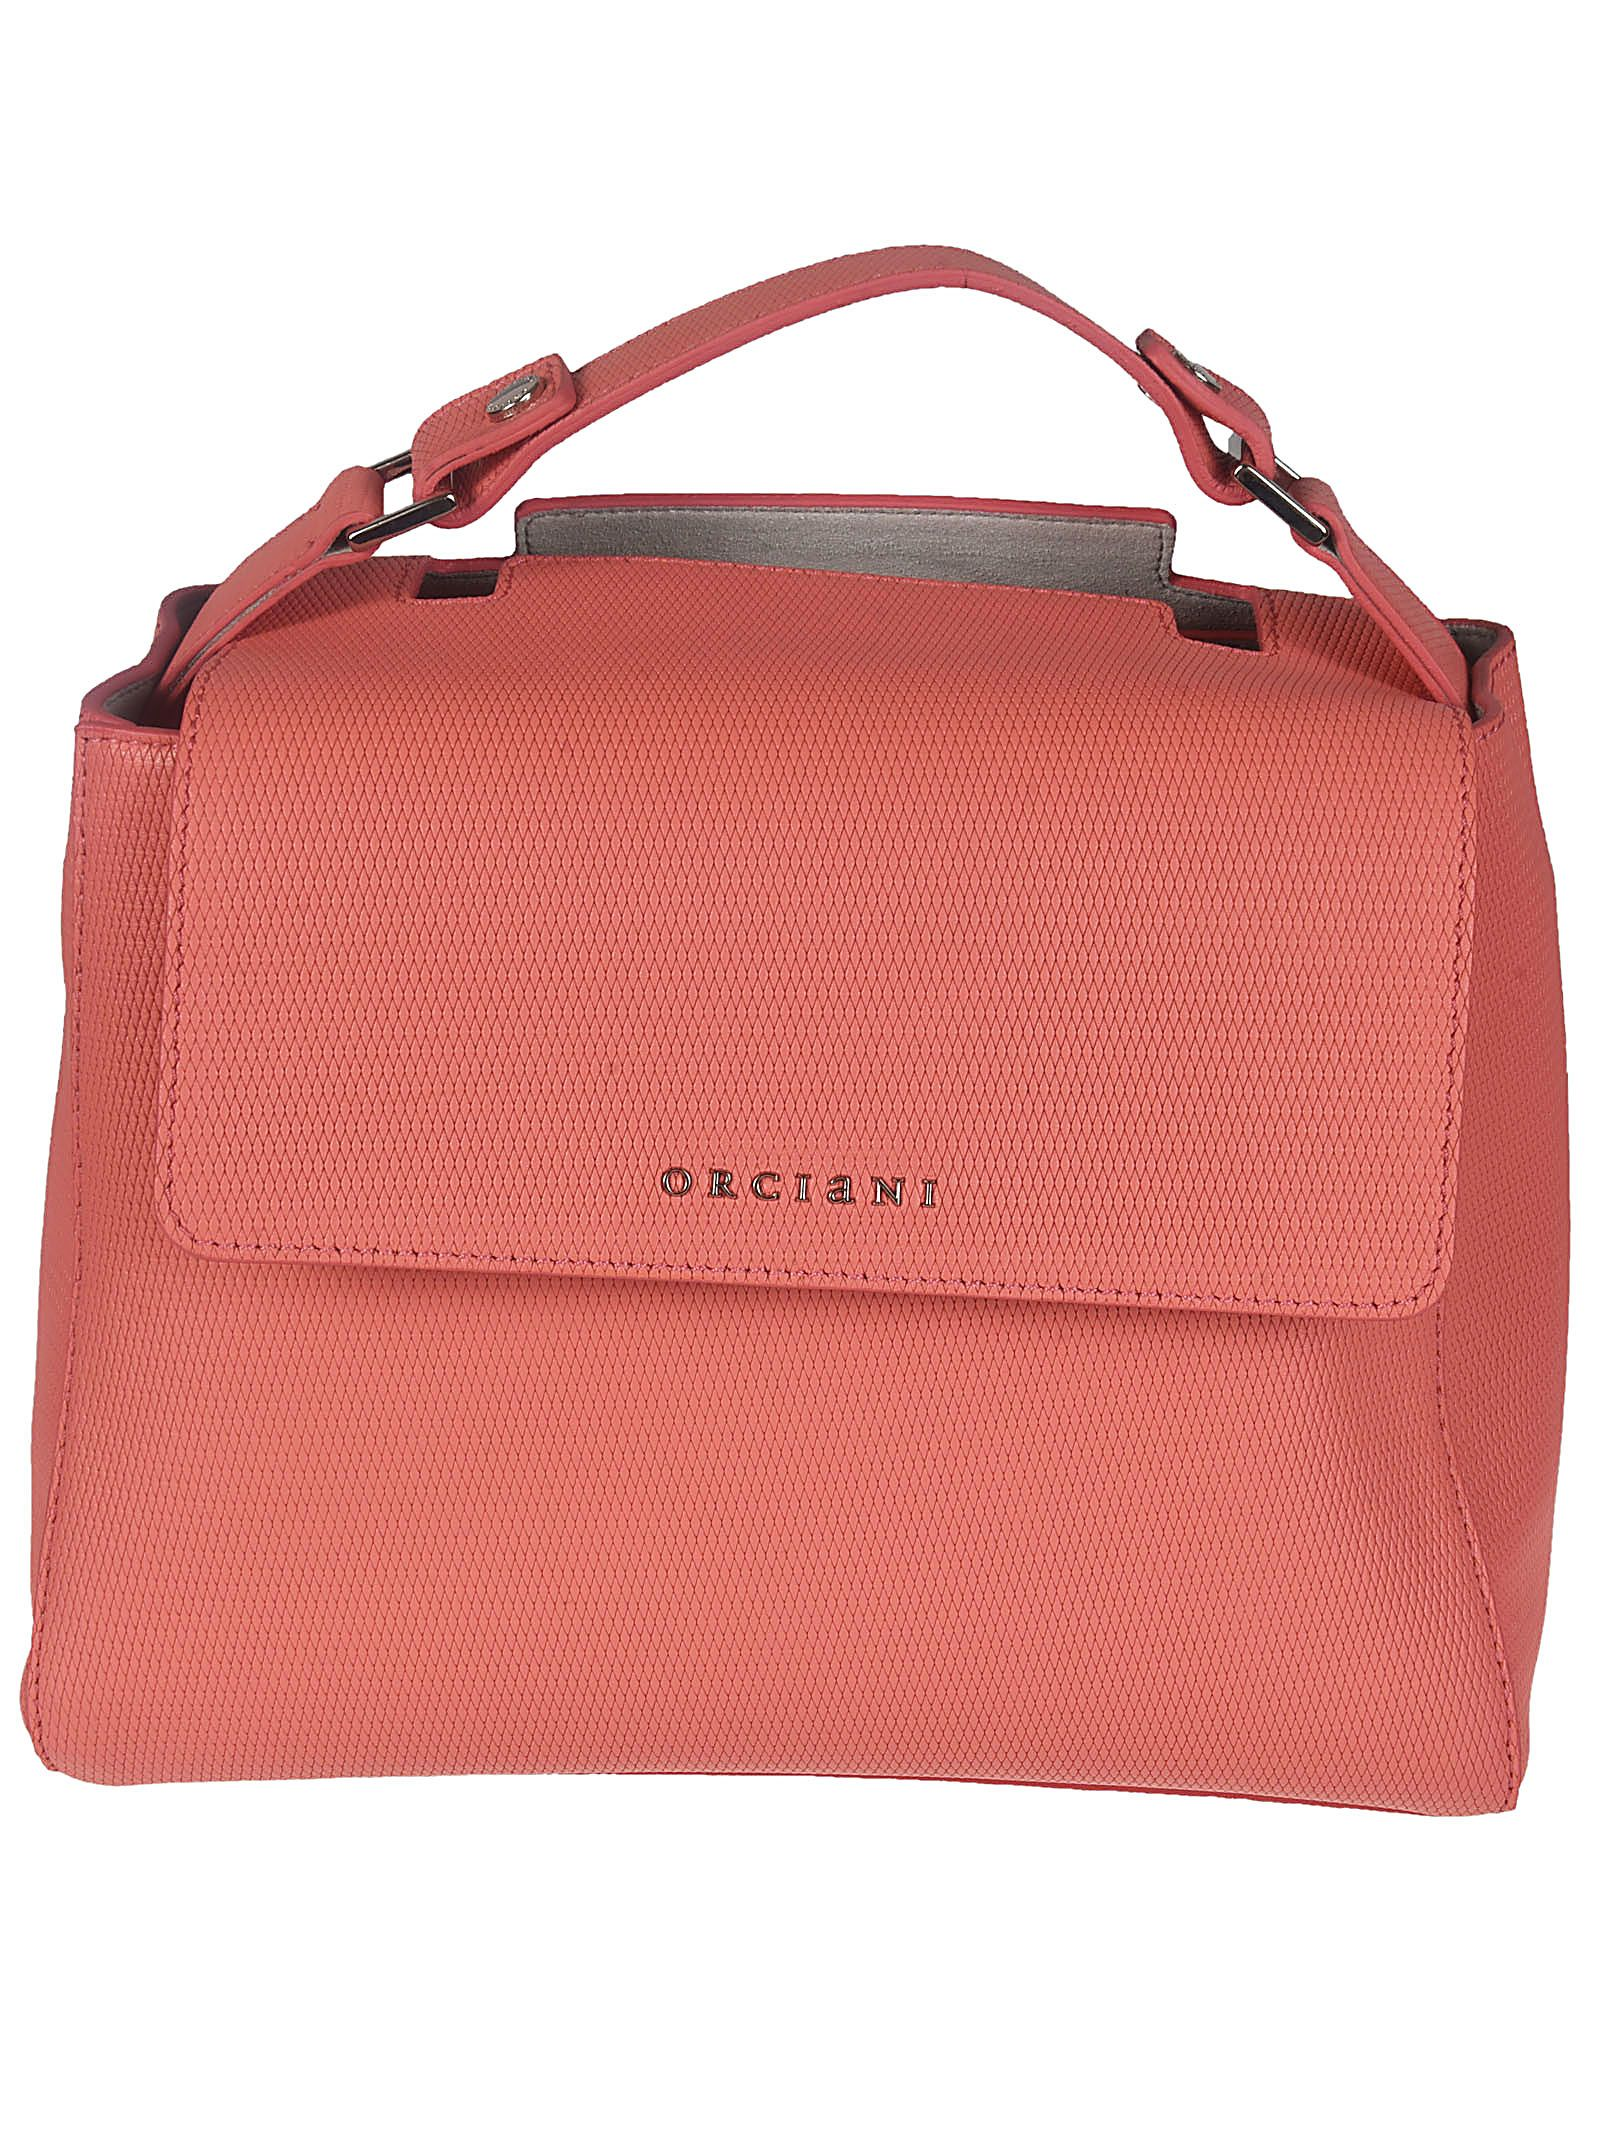 Handbags On Sale, Strawberry Red, Leather, 2017, one size Orciani